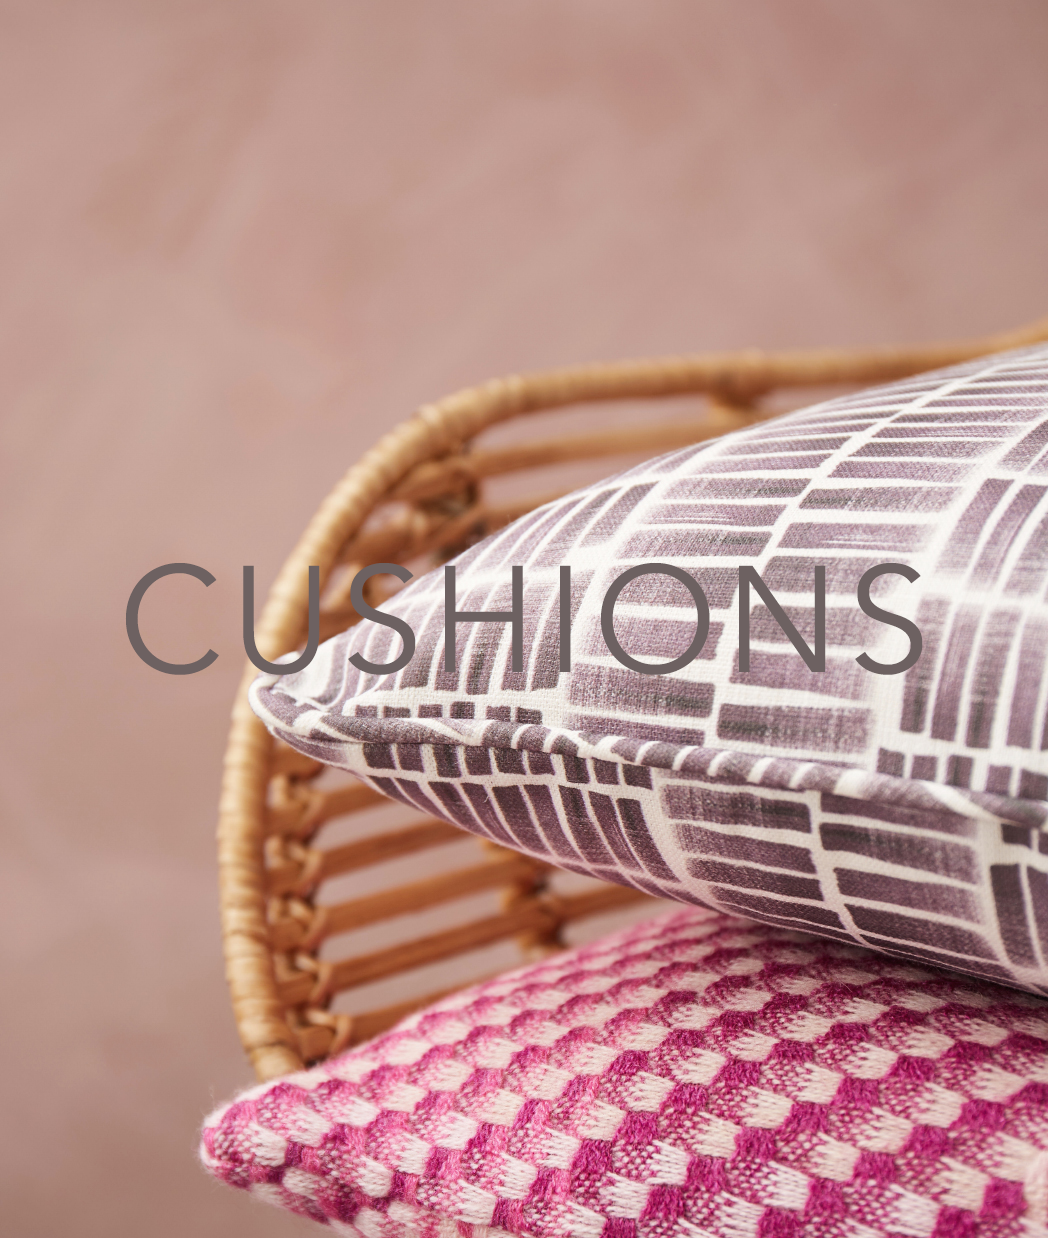 CLAIRE GAUDION designer cushions | contemporary modern home accessories